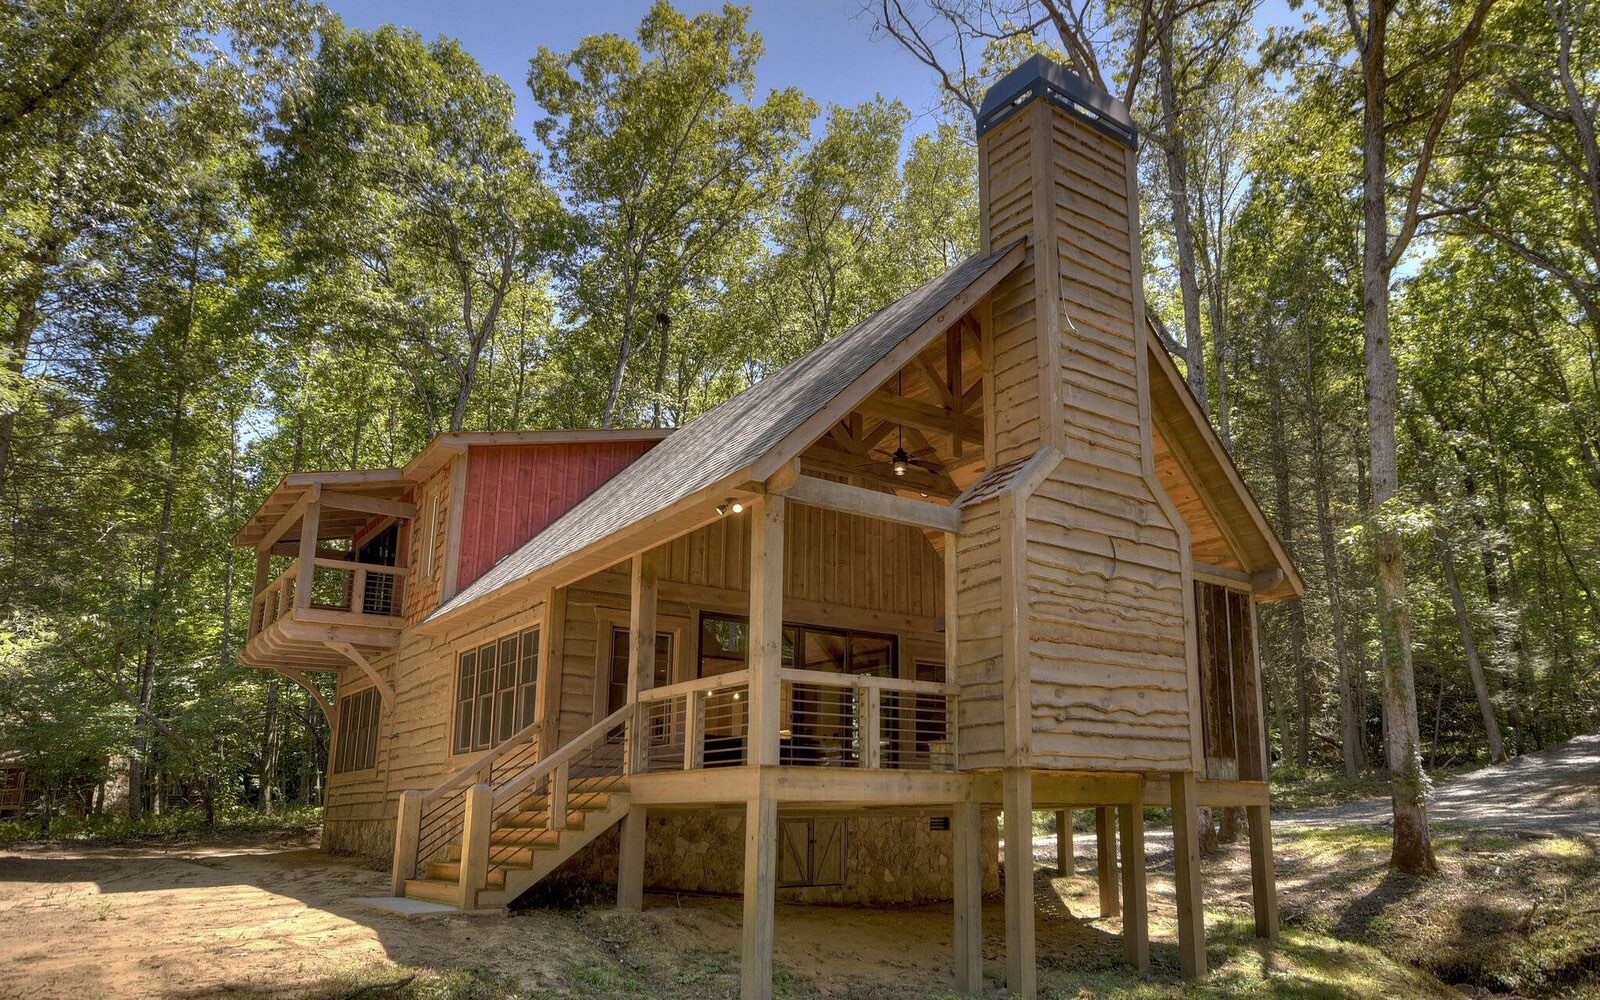 Mountain Homes and Cabins for sale in Blue Ridge, GA